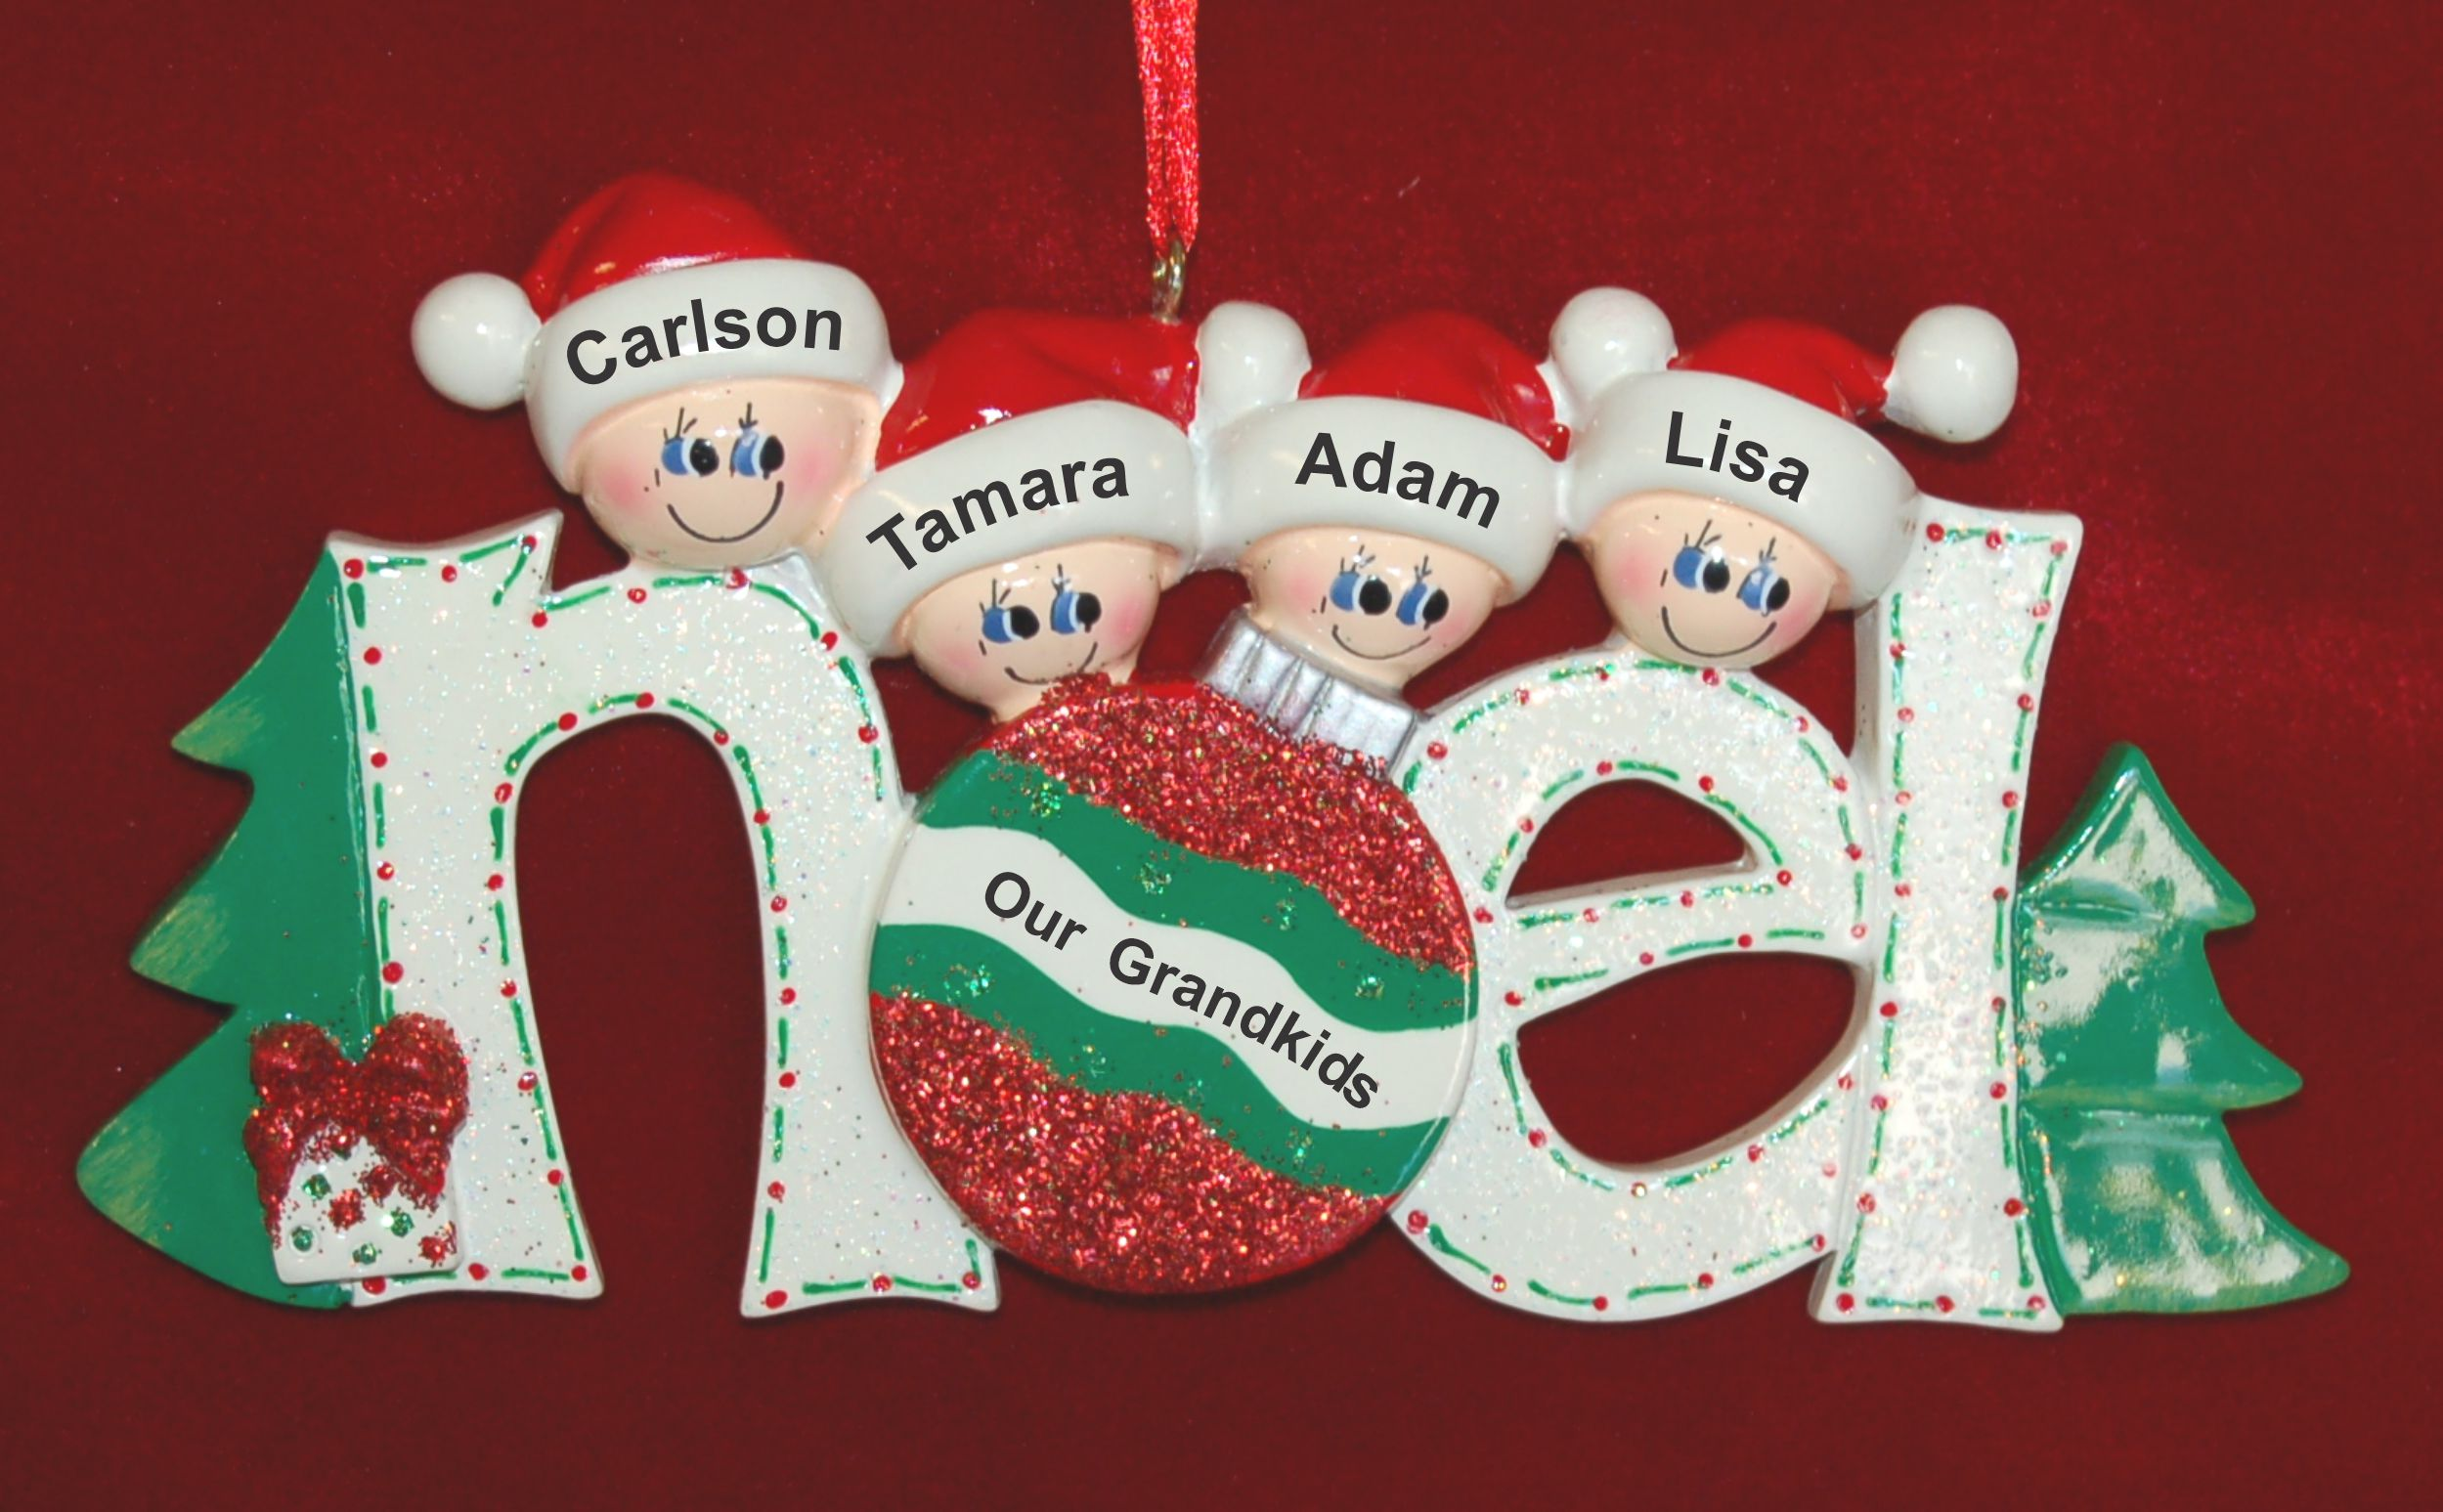 Personalized Grandparents Christmas Ornament Noel 4 Grandkids by Russell Rhodes